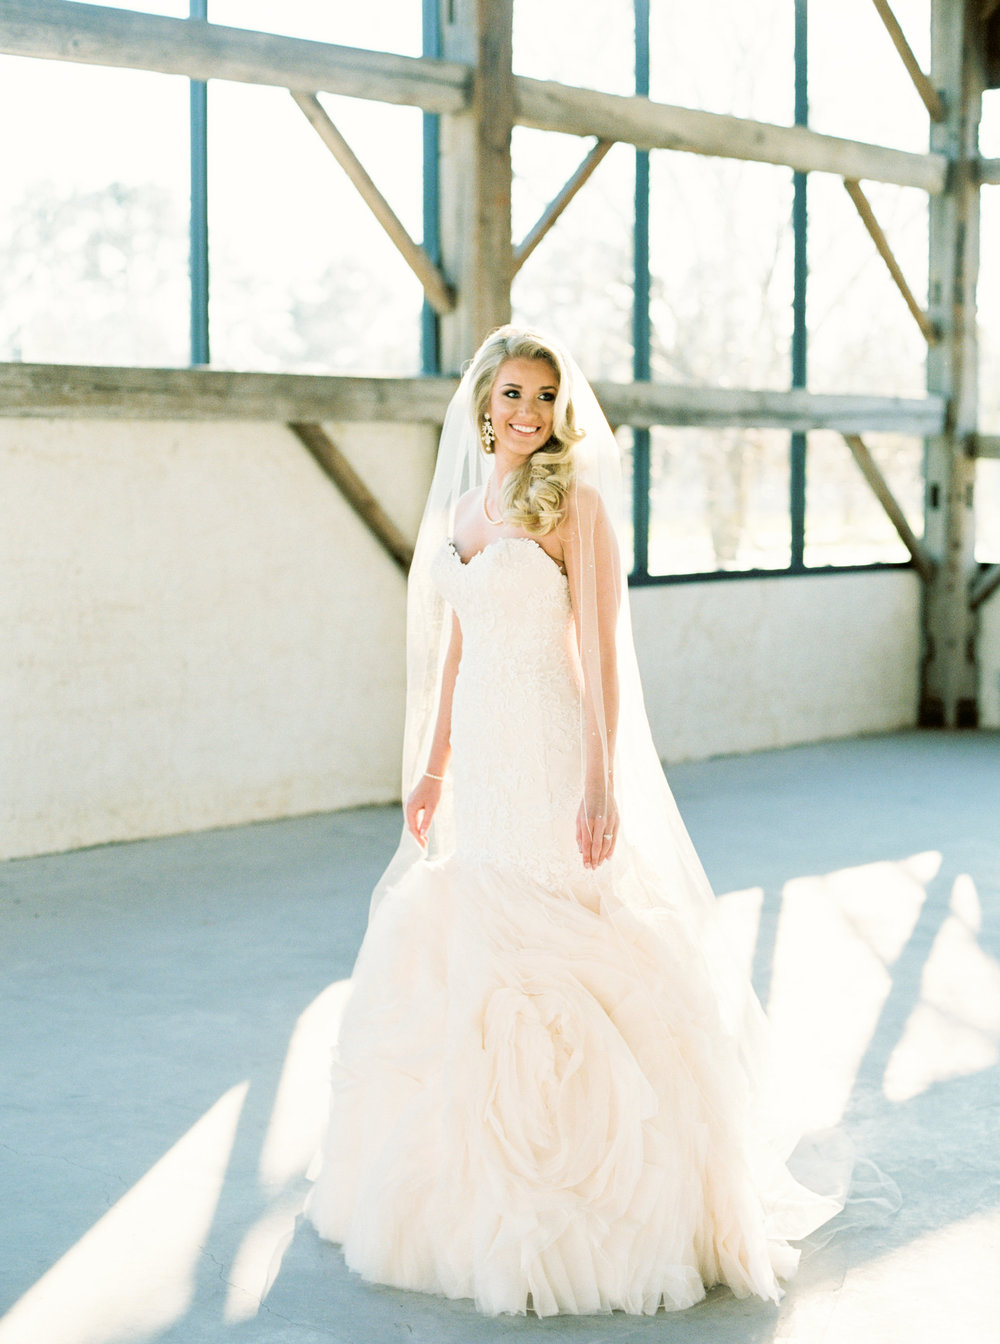 Brooke Bridals at Chandelier Grove by Britt Latz Photography